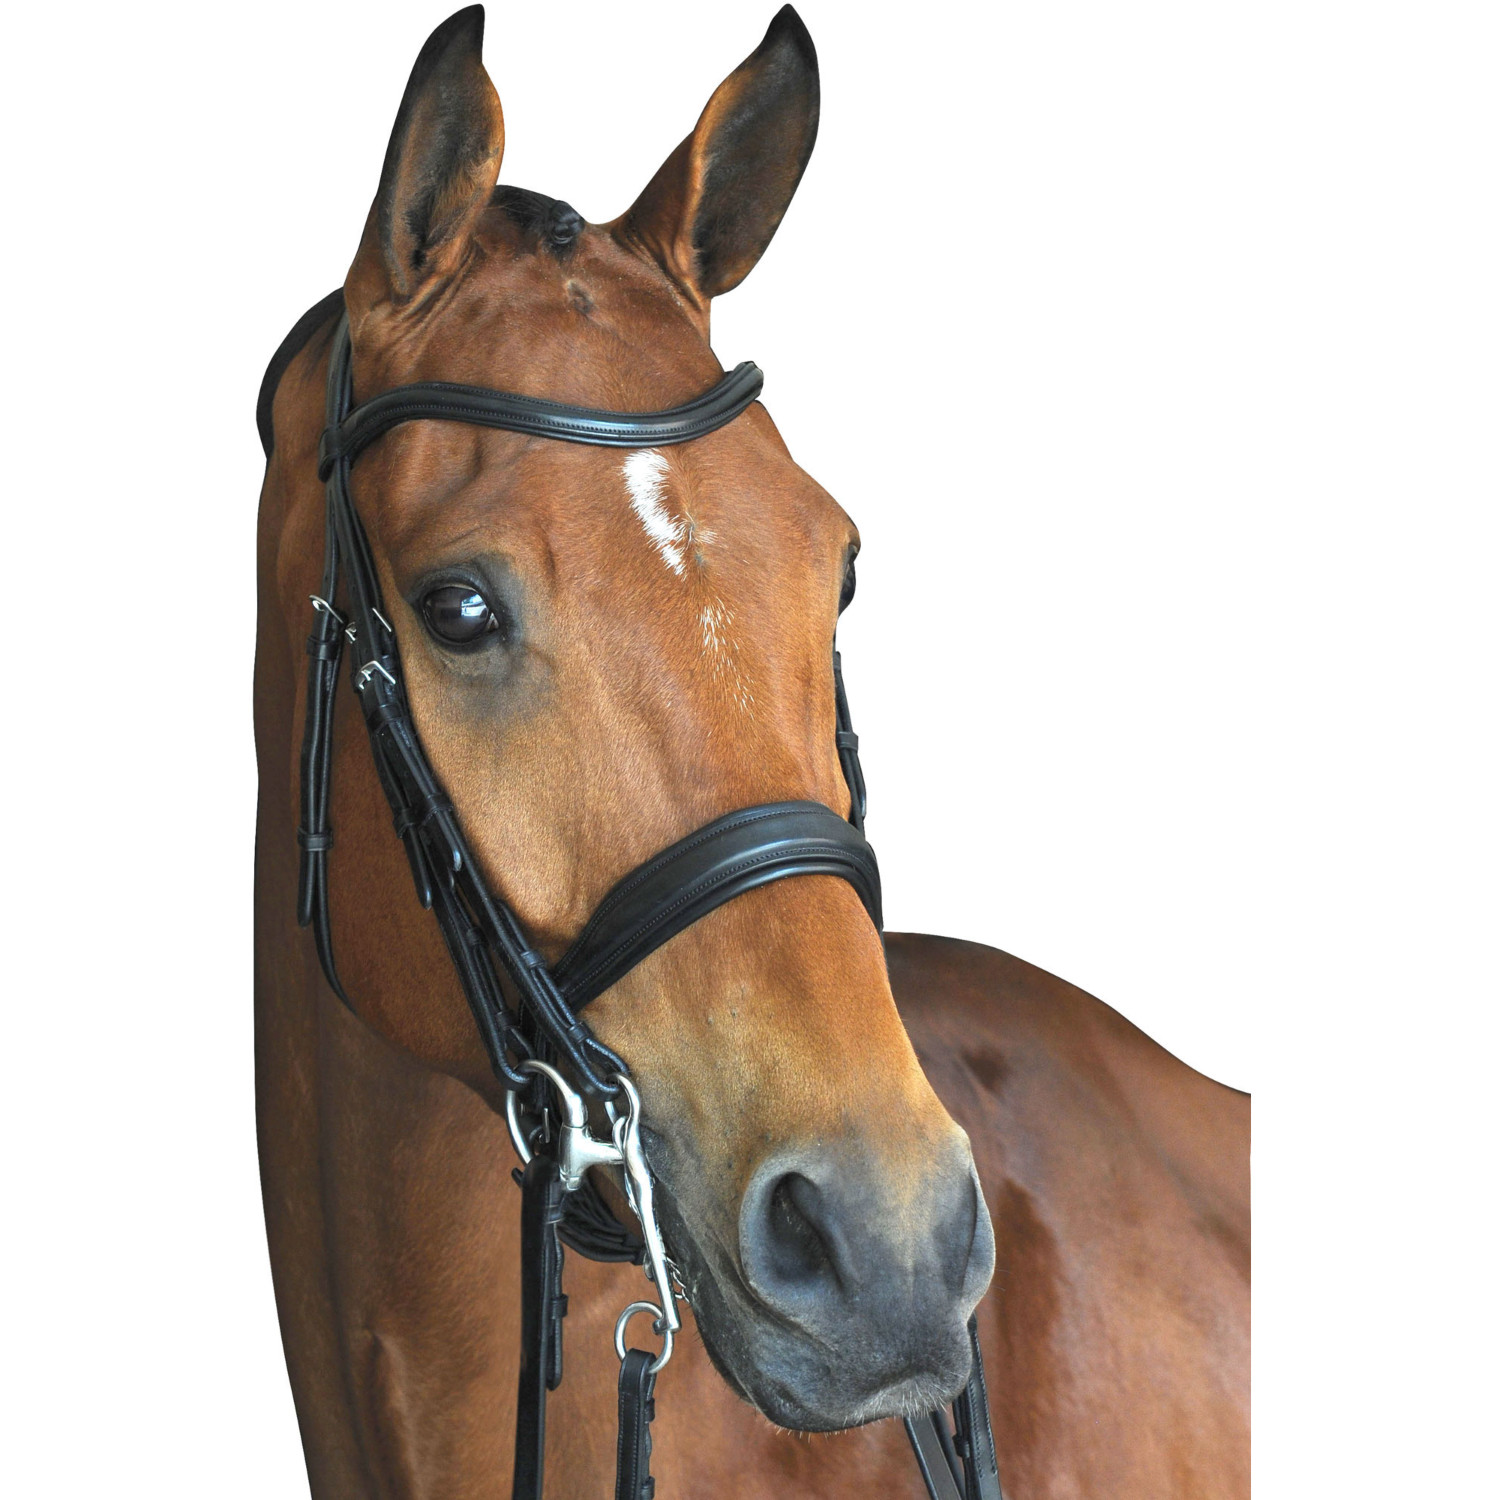 Soft Nylon Horse Rope Training Halter and 240cm Lead Rope